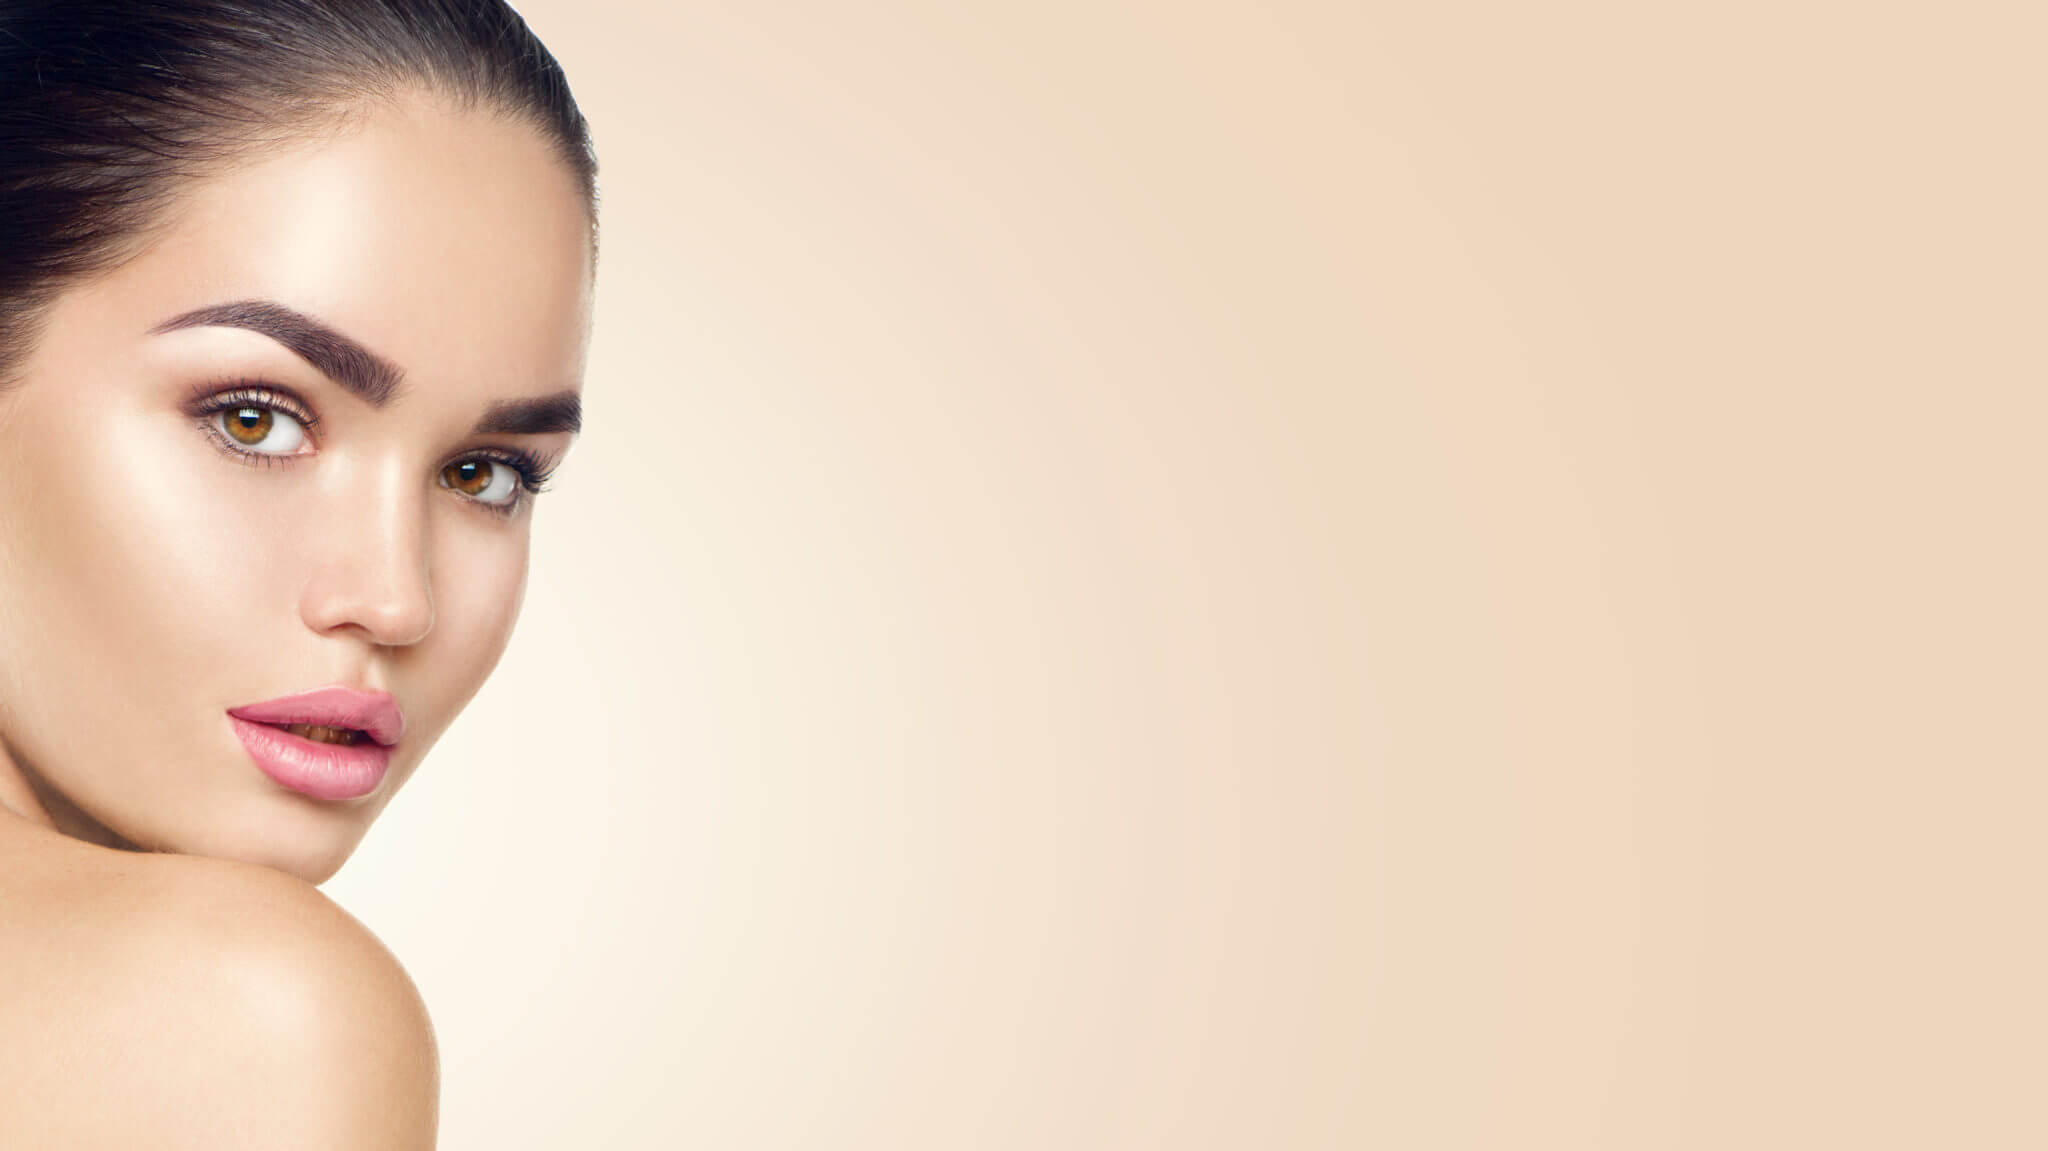 Beauty Woman Face Beautiful Brunette Young Model Girl With Perfect Skin Skincare Concept M Beauty Studio